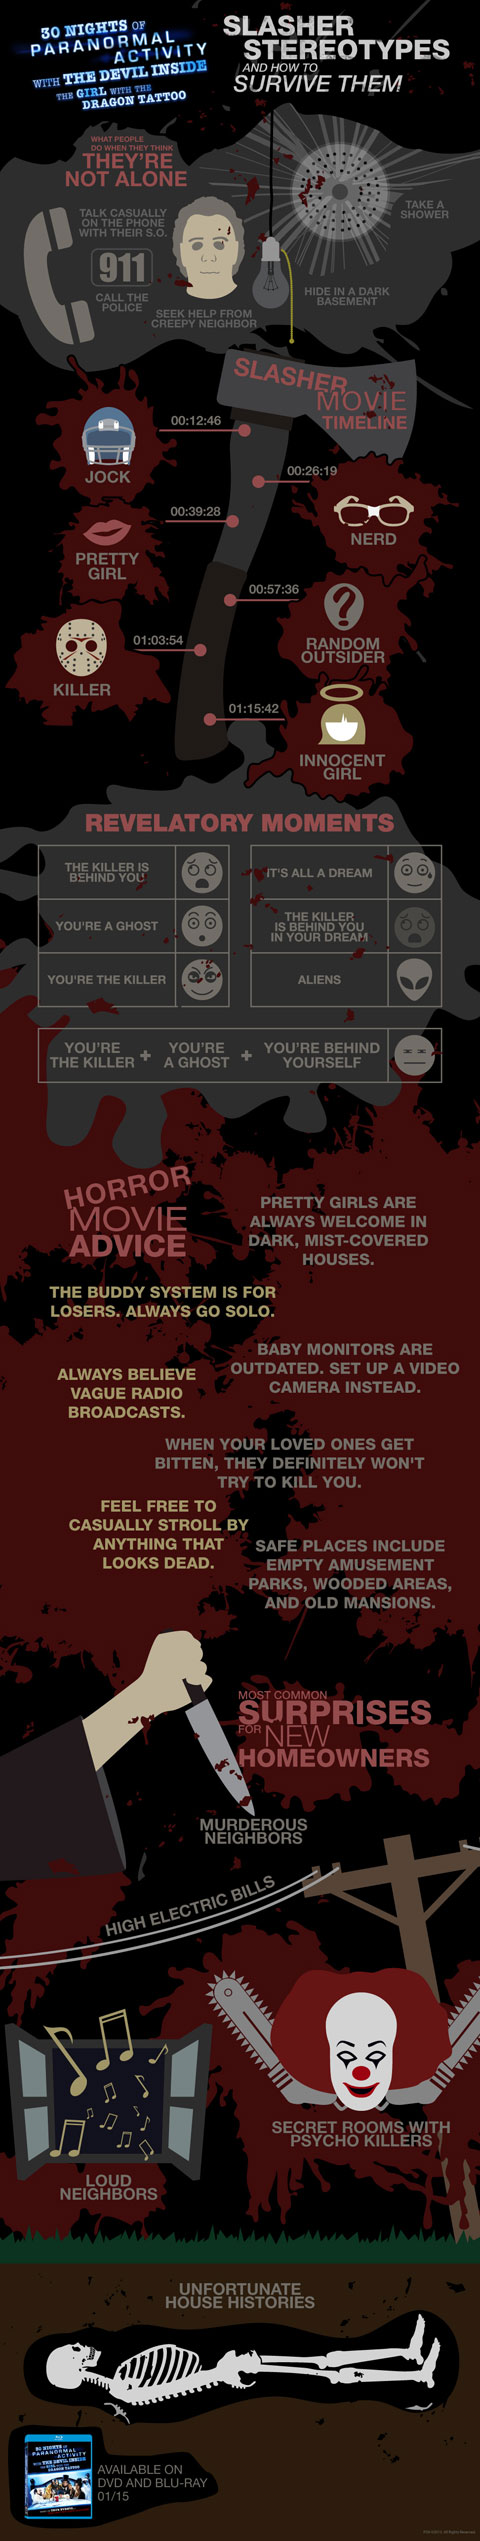 "Nextmovie.com ""Slasher Stereotypes und How To Survive Them"", Infographic, (c) www.nextmovie.com"